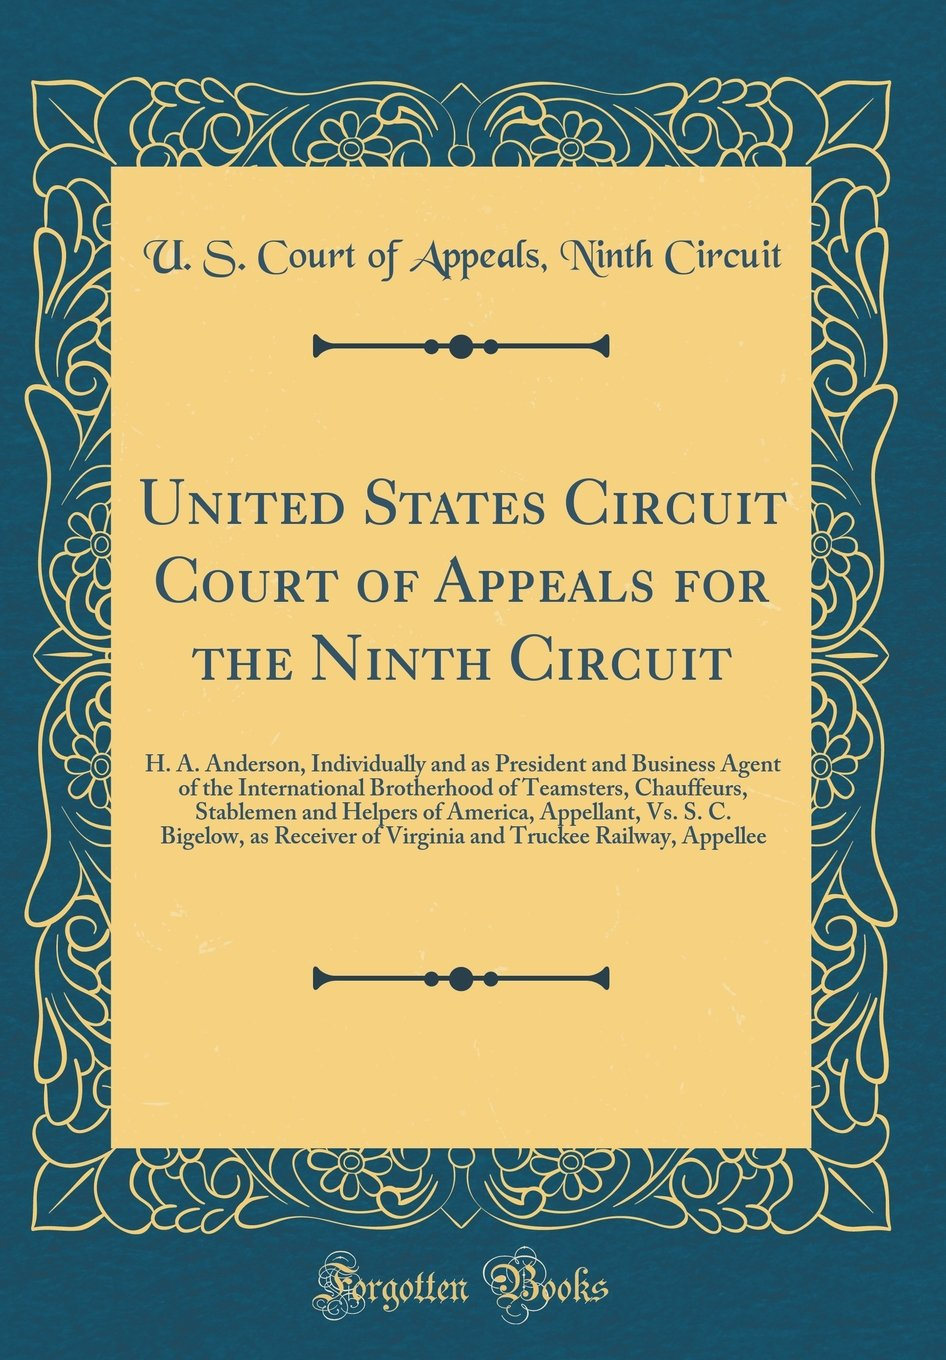 Download United States Circuit Court of Appeals for the Ninth Circuit: H. A. Anderson, Individually and as President and Business Agent of the International America, Appellant, vs. S. C. Bigelow, as Re pdf epub